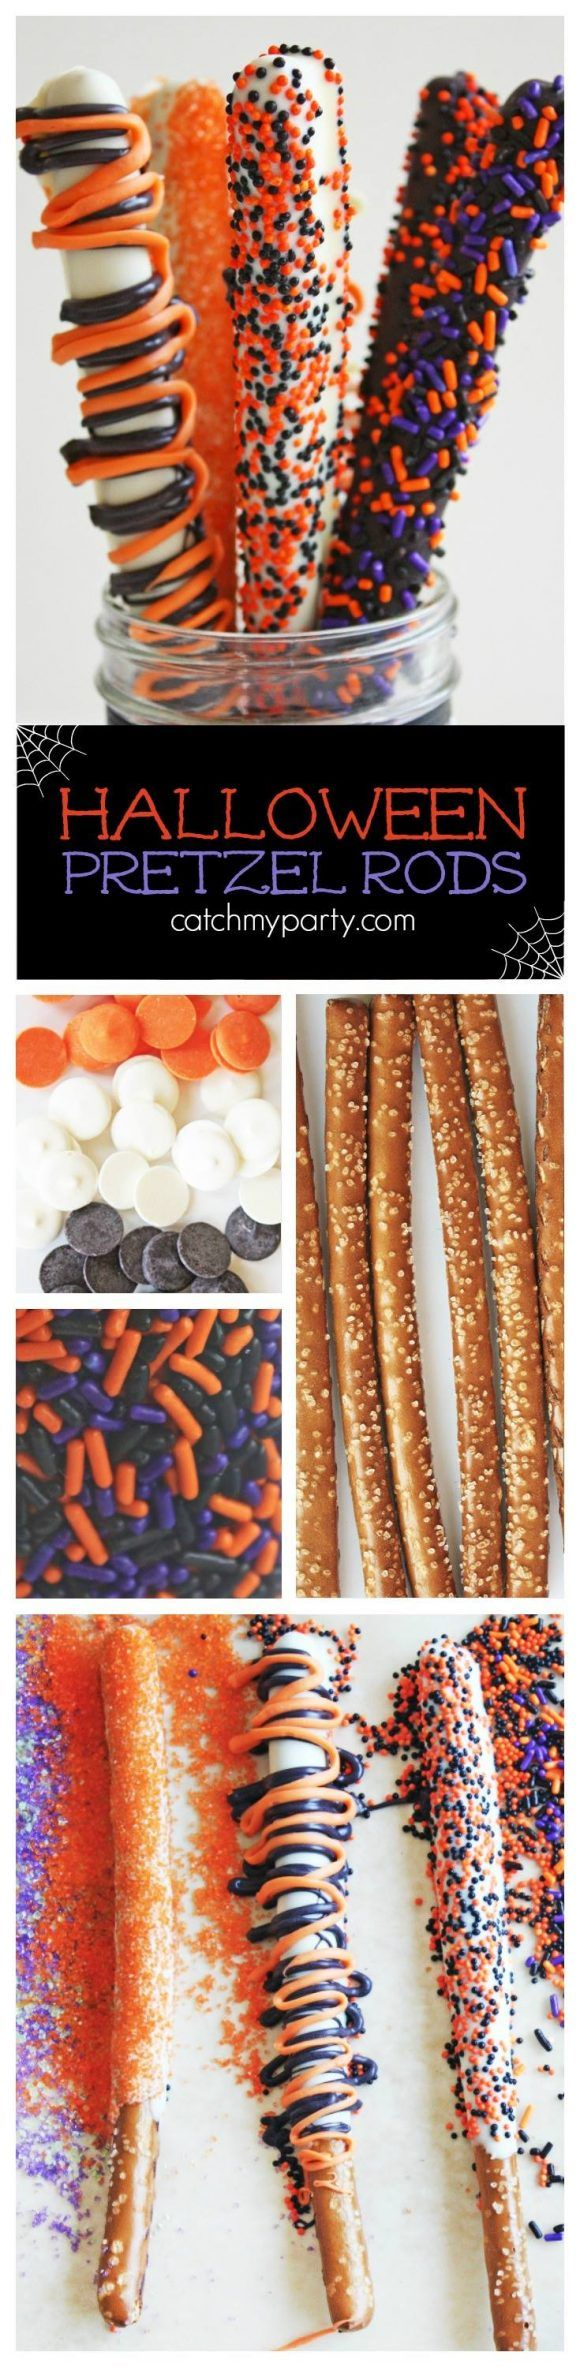 Halloween Pretzel Rods                                                                                                                                                                                 More